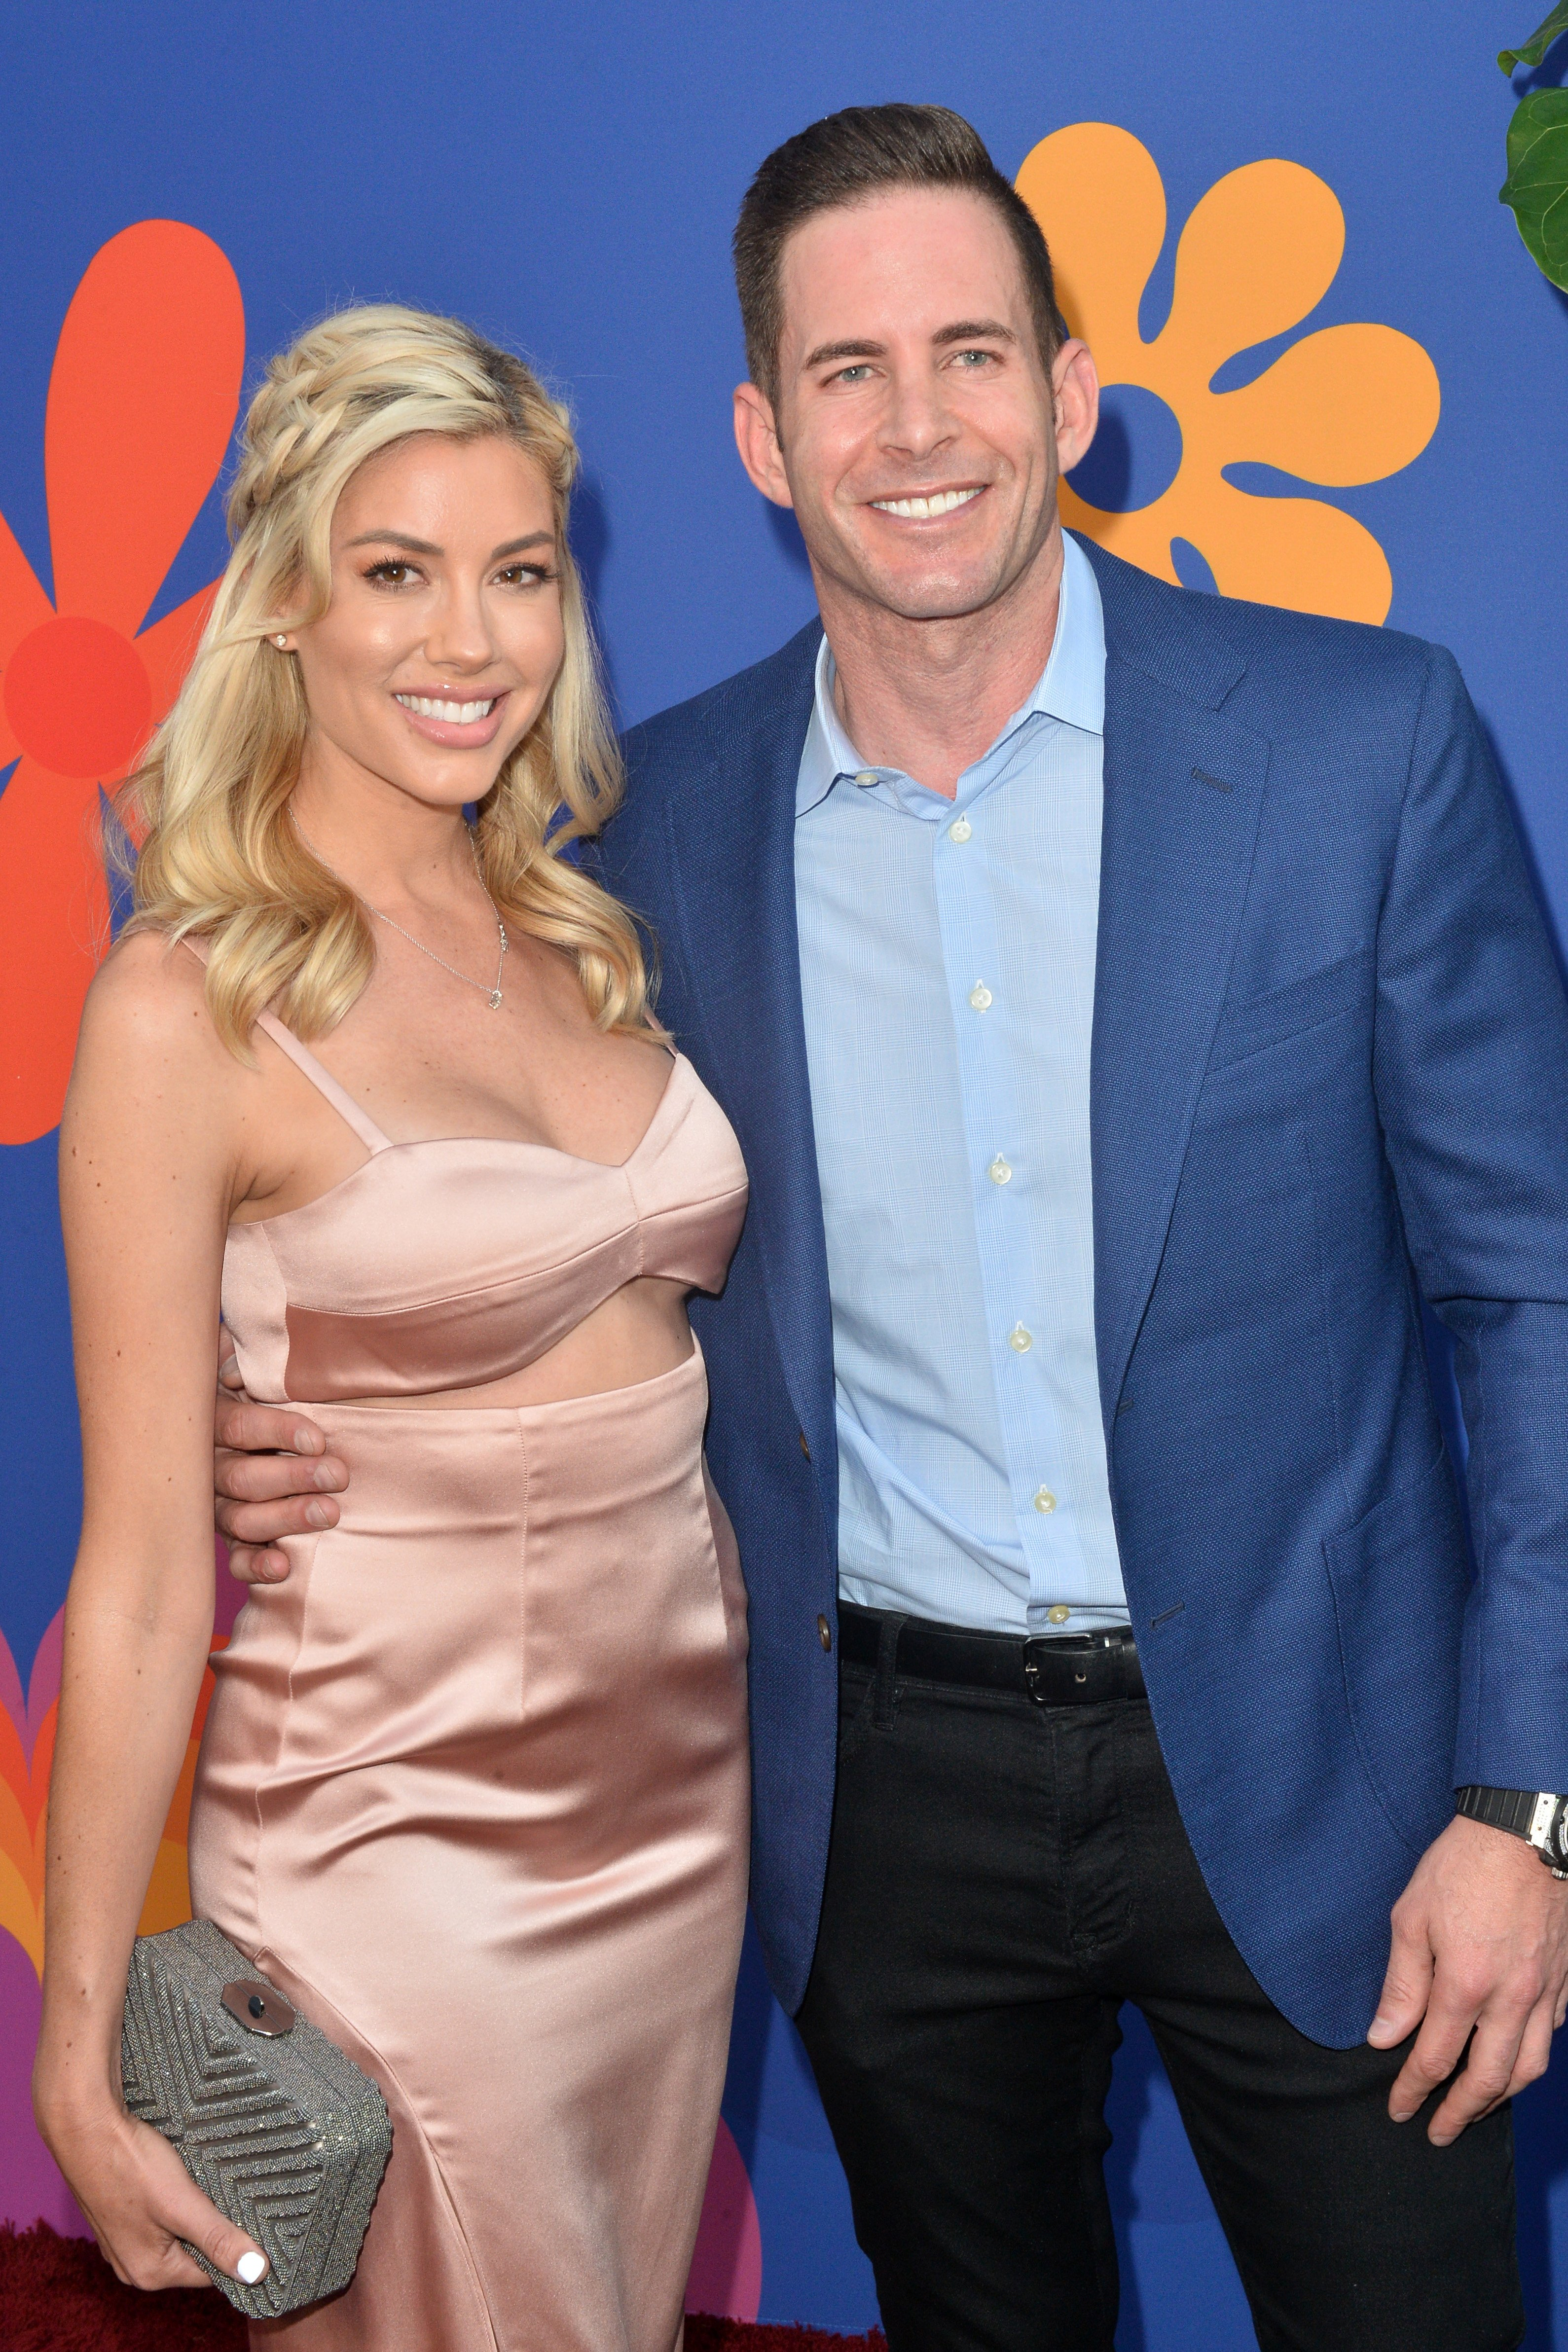 Heather Rae Young and Tarek El Moussa attend the Premiere of HGTV's 'A Very Brady Renovation' at The Garland Hotel on September 05, 2019 in North Hollywood, California | Photo: Getty Images